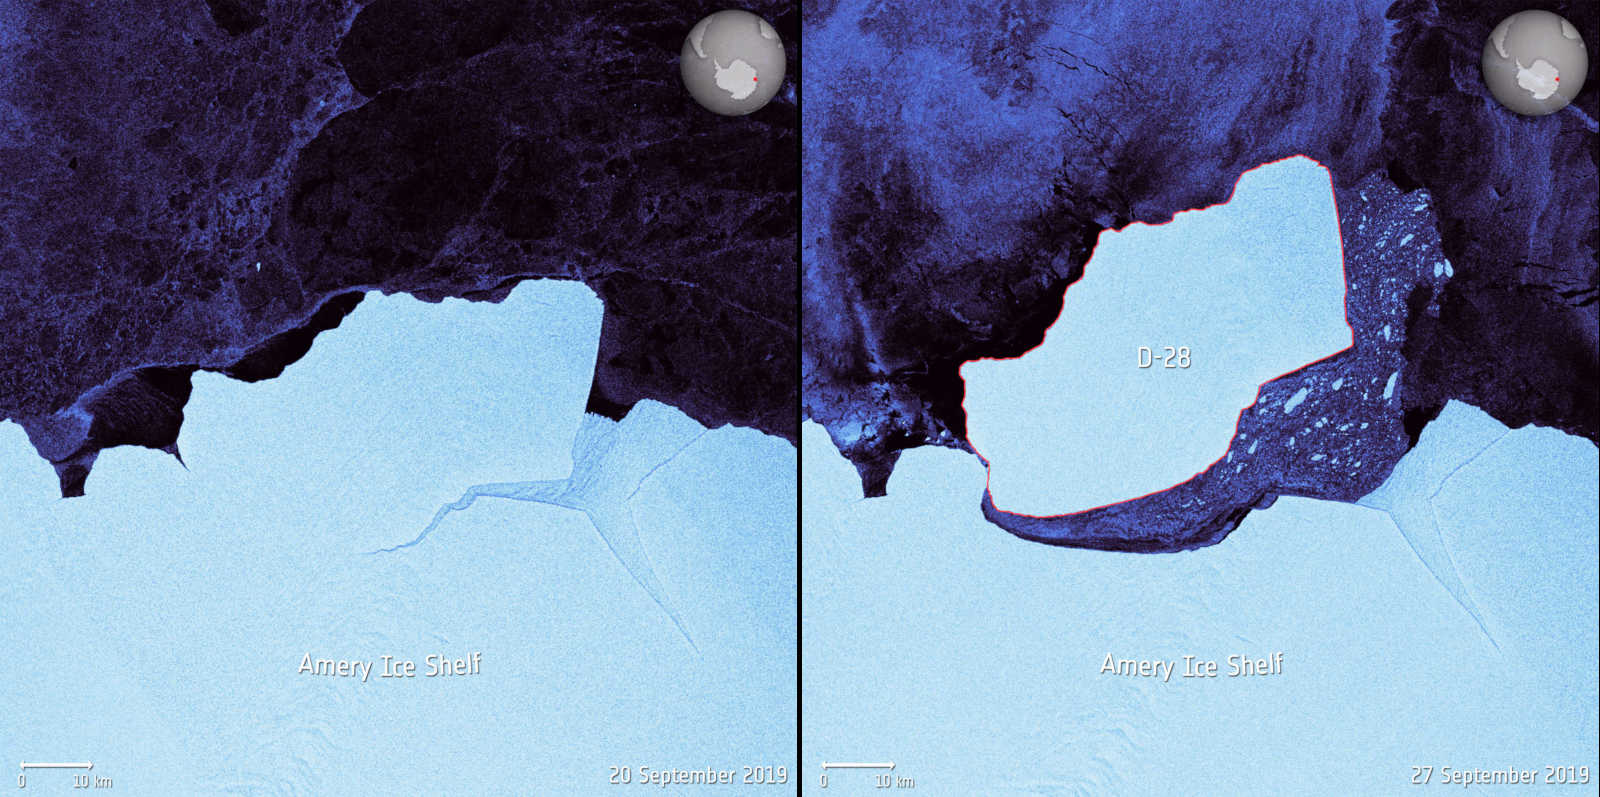 Satellite images taken before and after D-28 broke free of the Amery Ice Shelf in Antarctica.